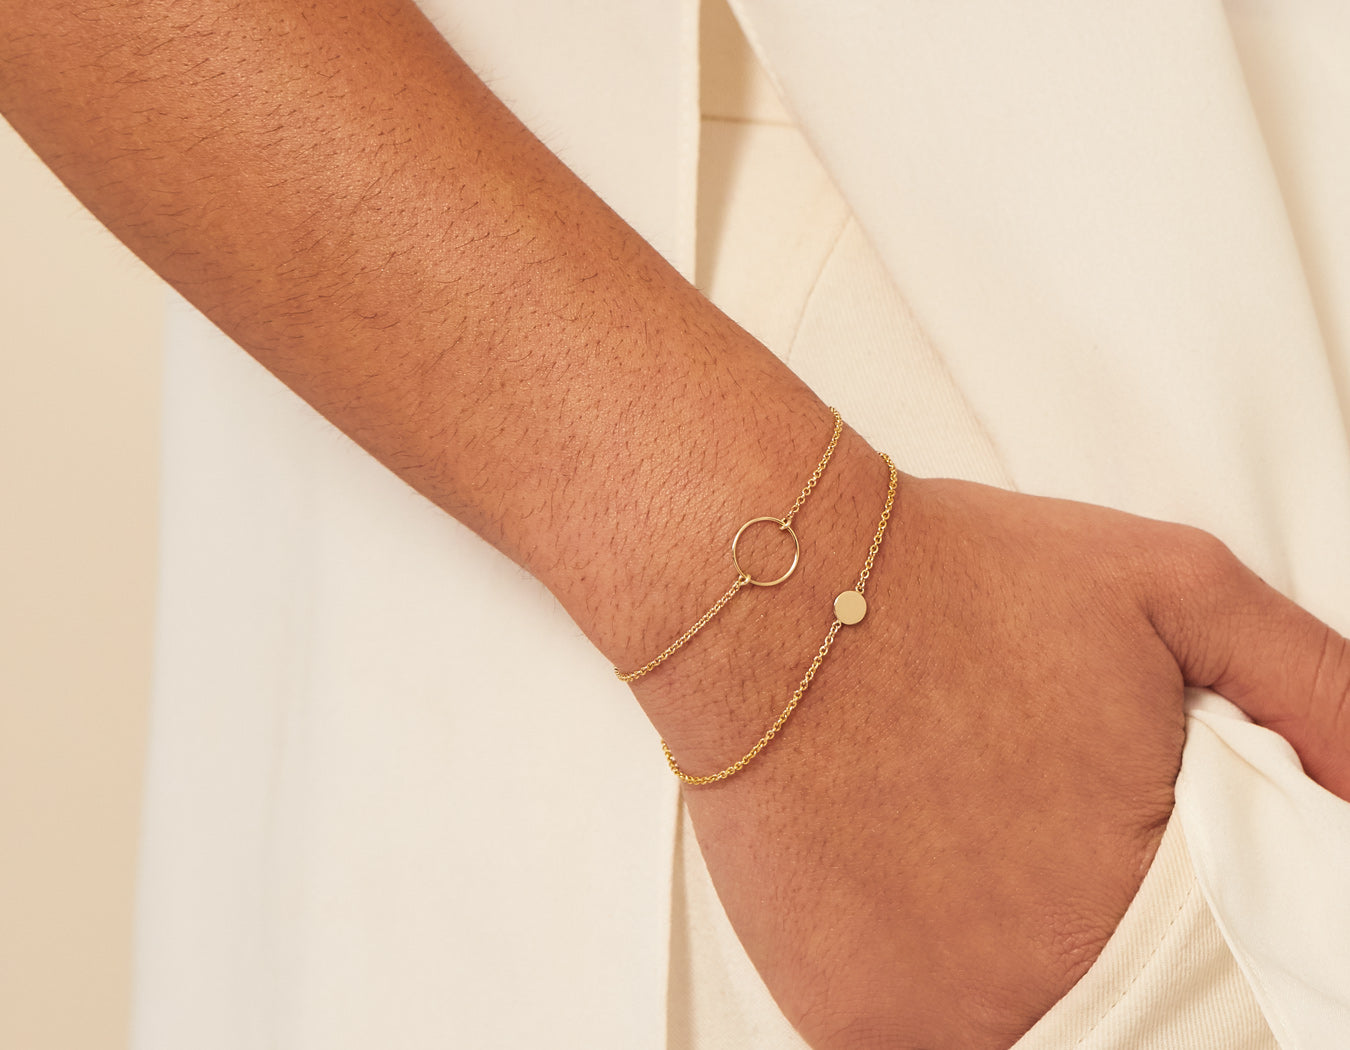 Modelled Small simple classic Initial Bracelet 14k yellow gold disk thin chain with circle bracelet Vrai and Oro